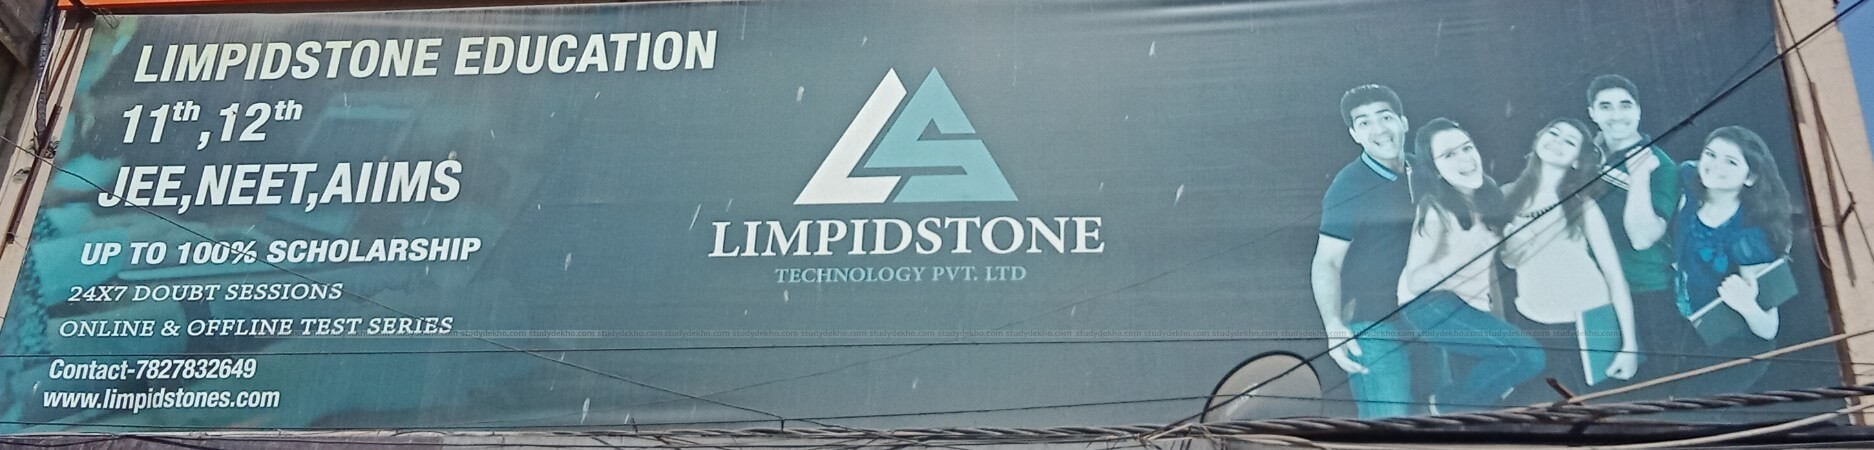 LIMPIDSTONE EDUCATION Logo